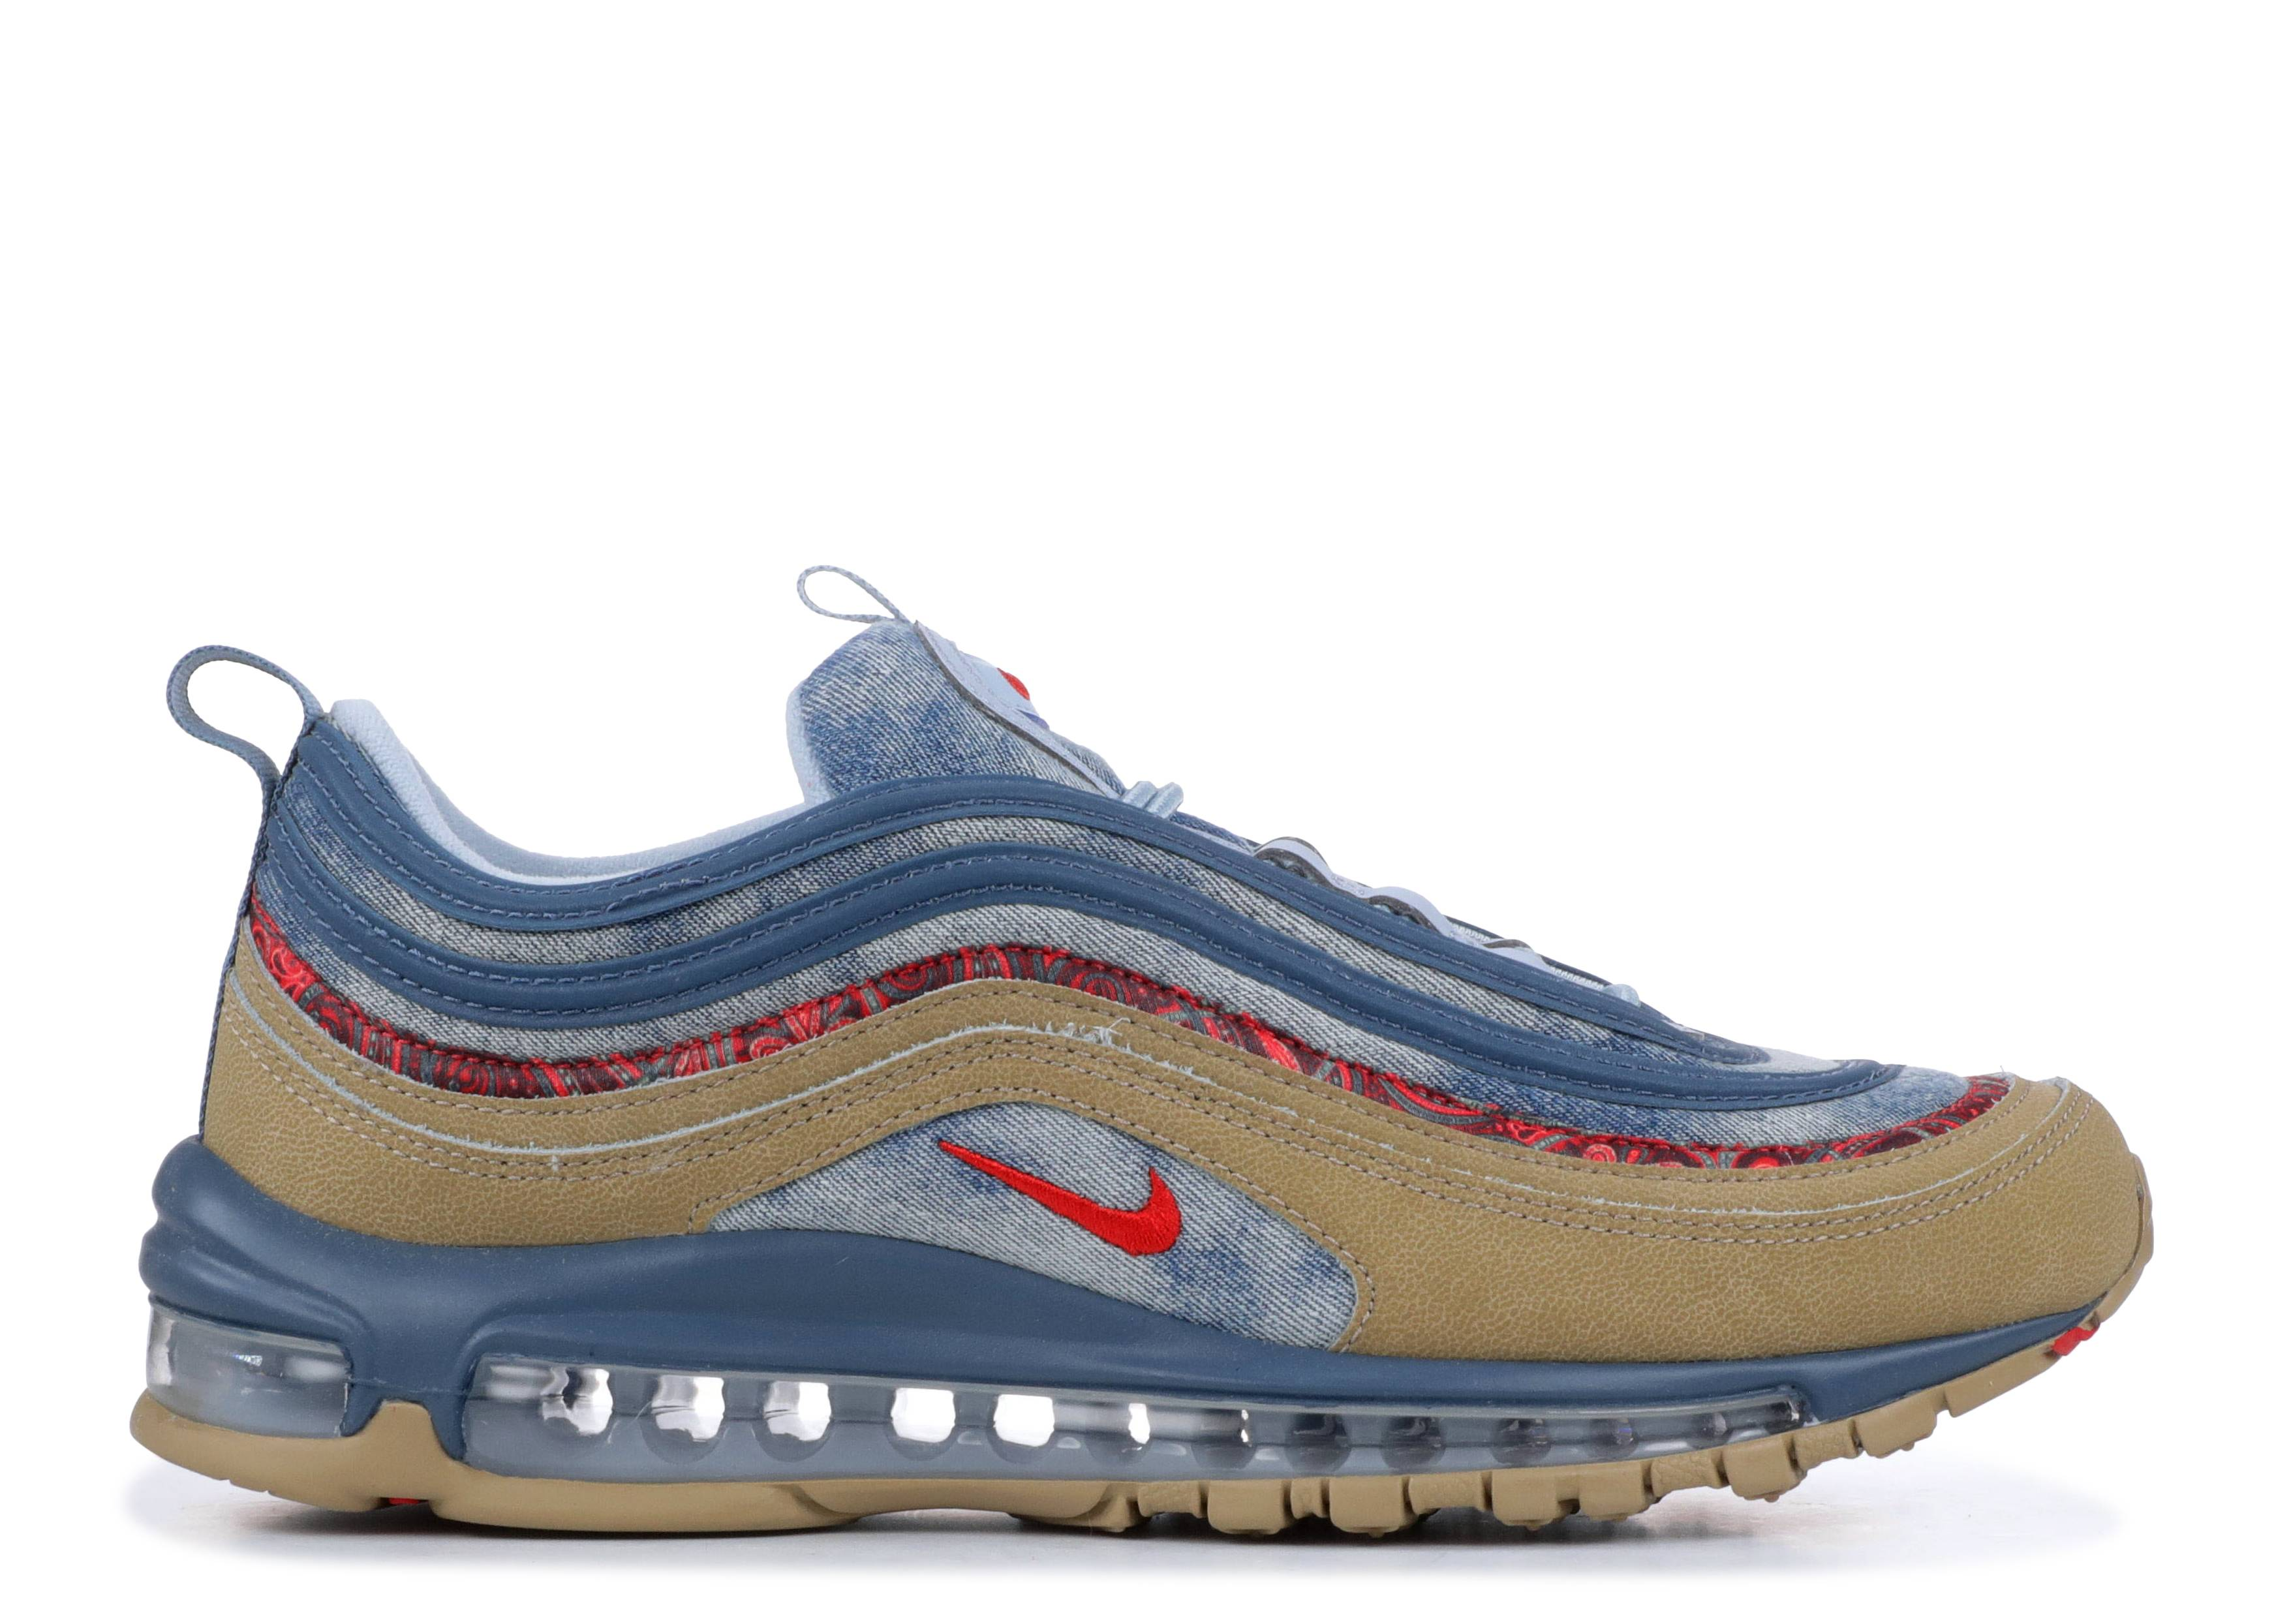 Nike Air Max 97 - Nike - bv6056 200 - parachute beige university red ... a7e587abe